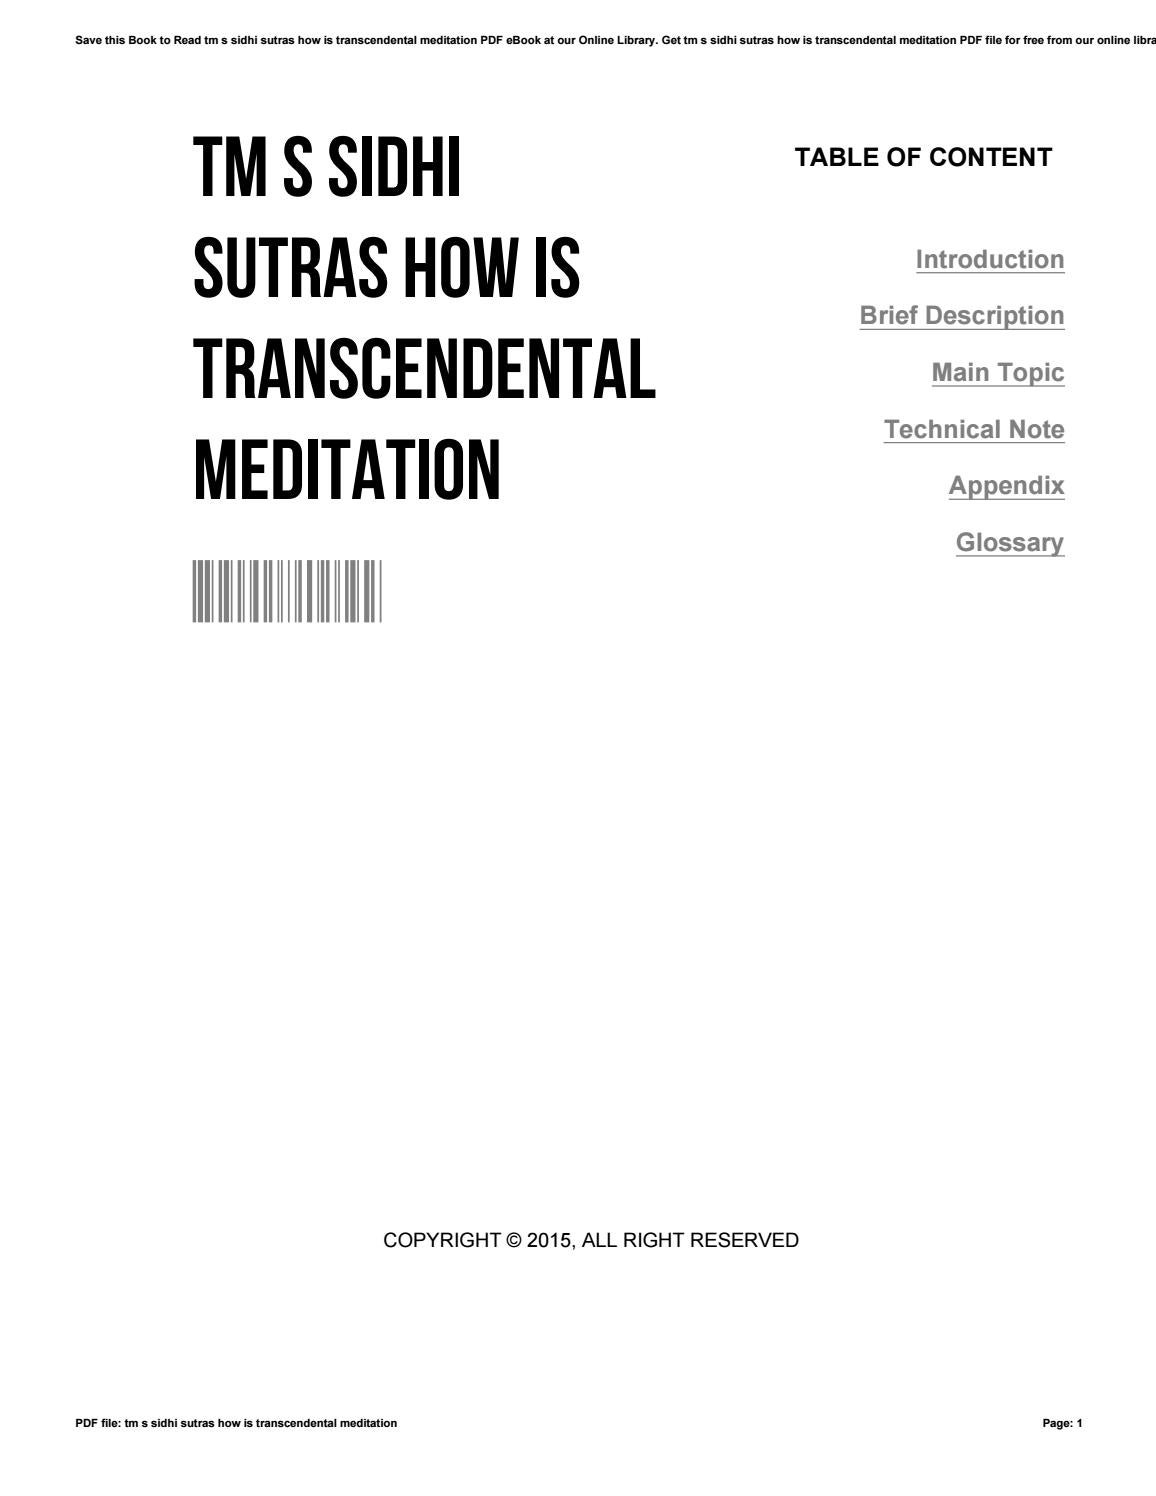 Tm s sidhi sutras how is transcendental meditation by